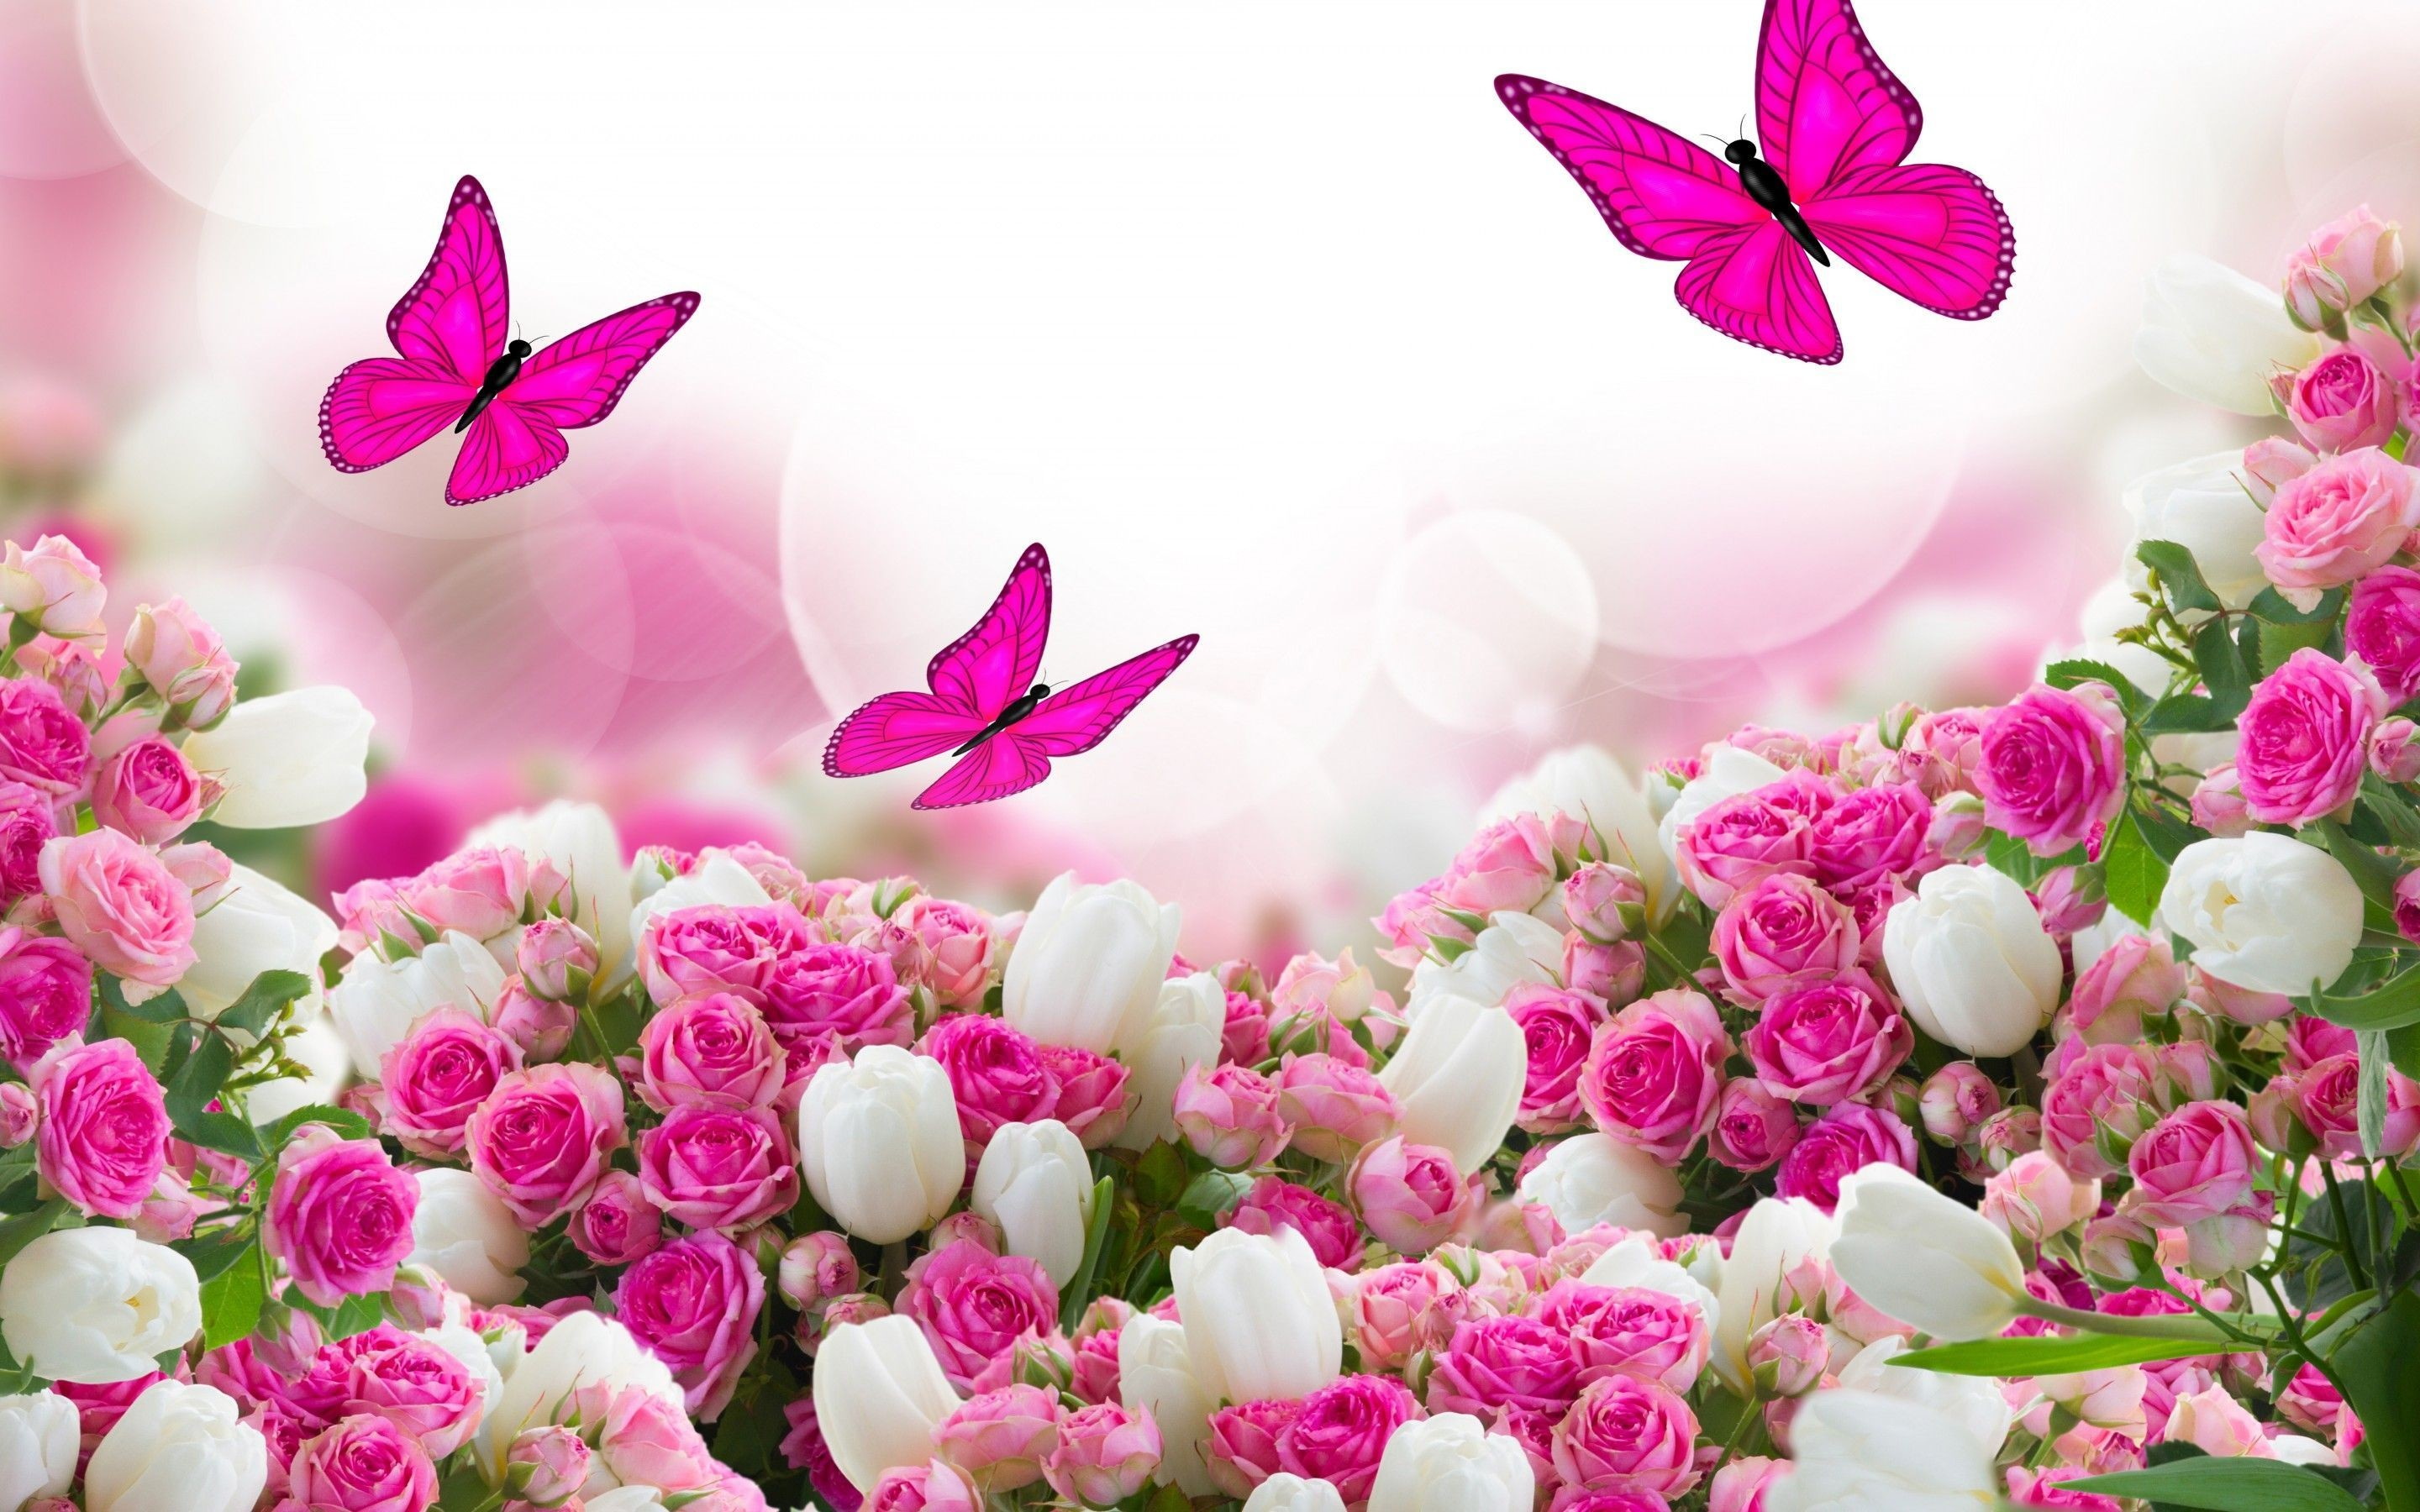 2880x1800 Flower Pink Rose Gallery 560457989 Wallpaper For Free Awesome